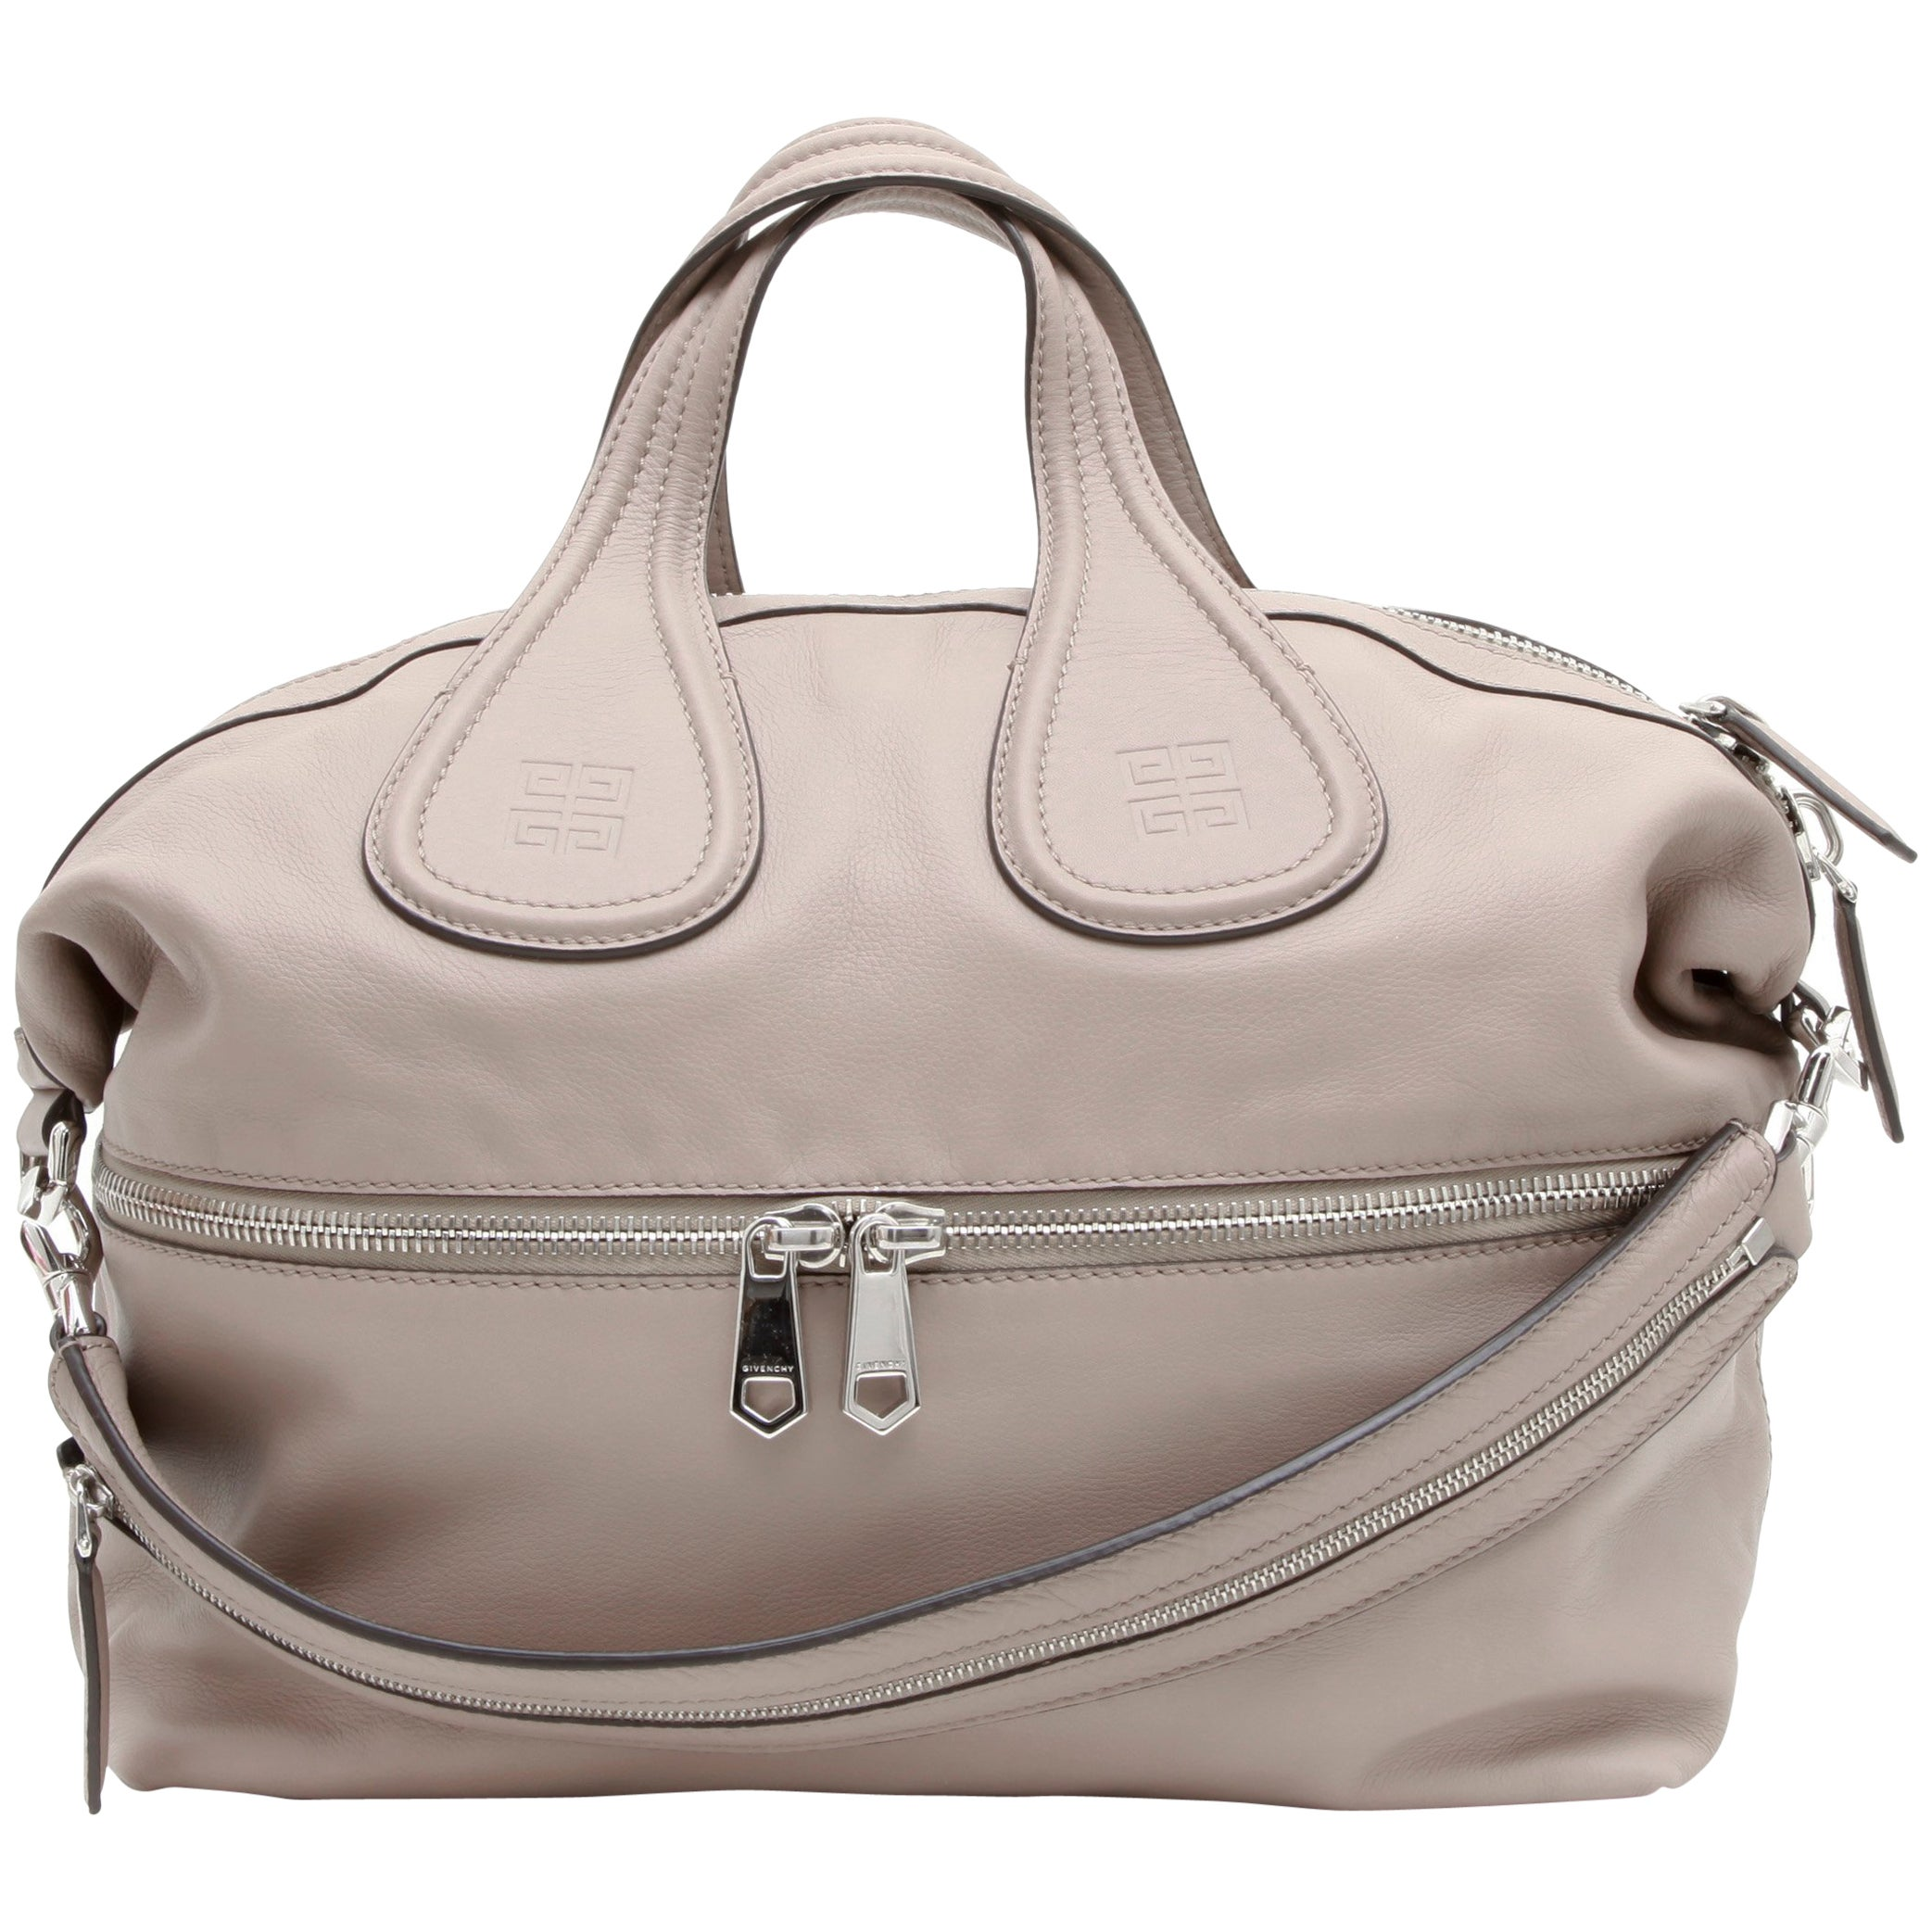 b62d16f949 GIVENCHY Nightingale Large Model Handbag in Pink Beige Leather at 1stdibs